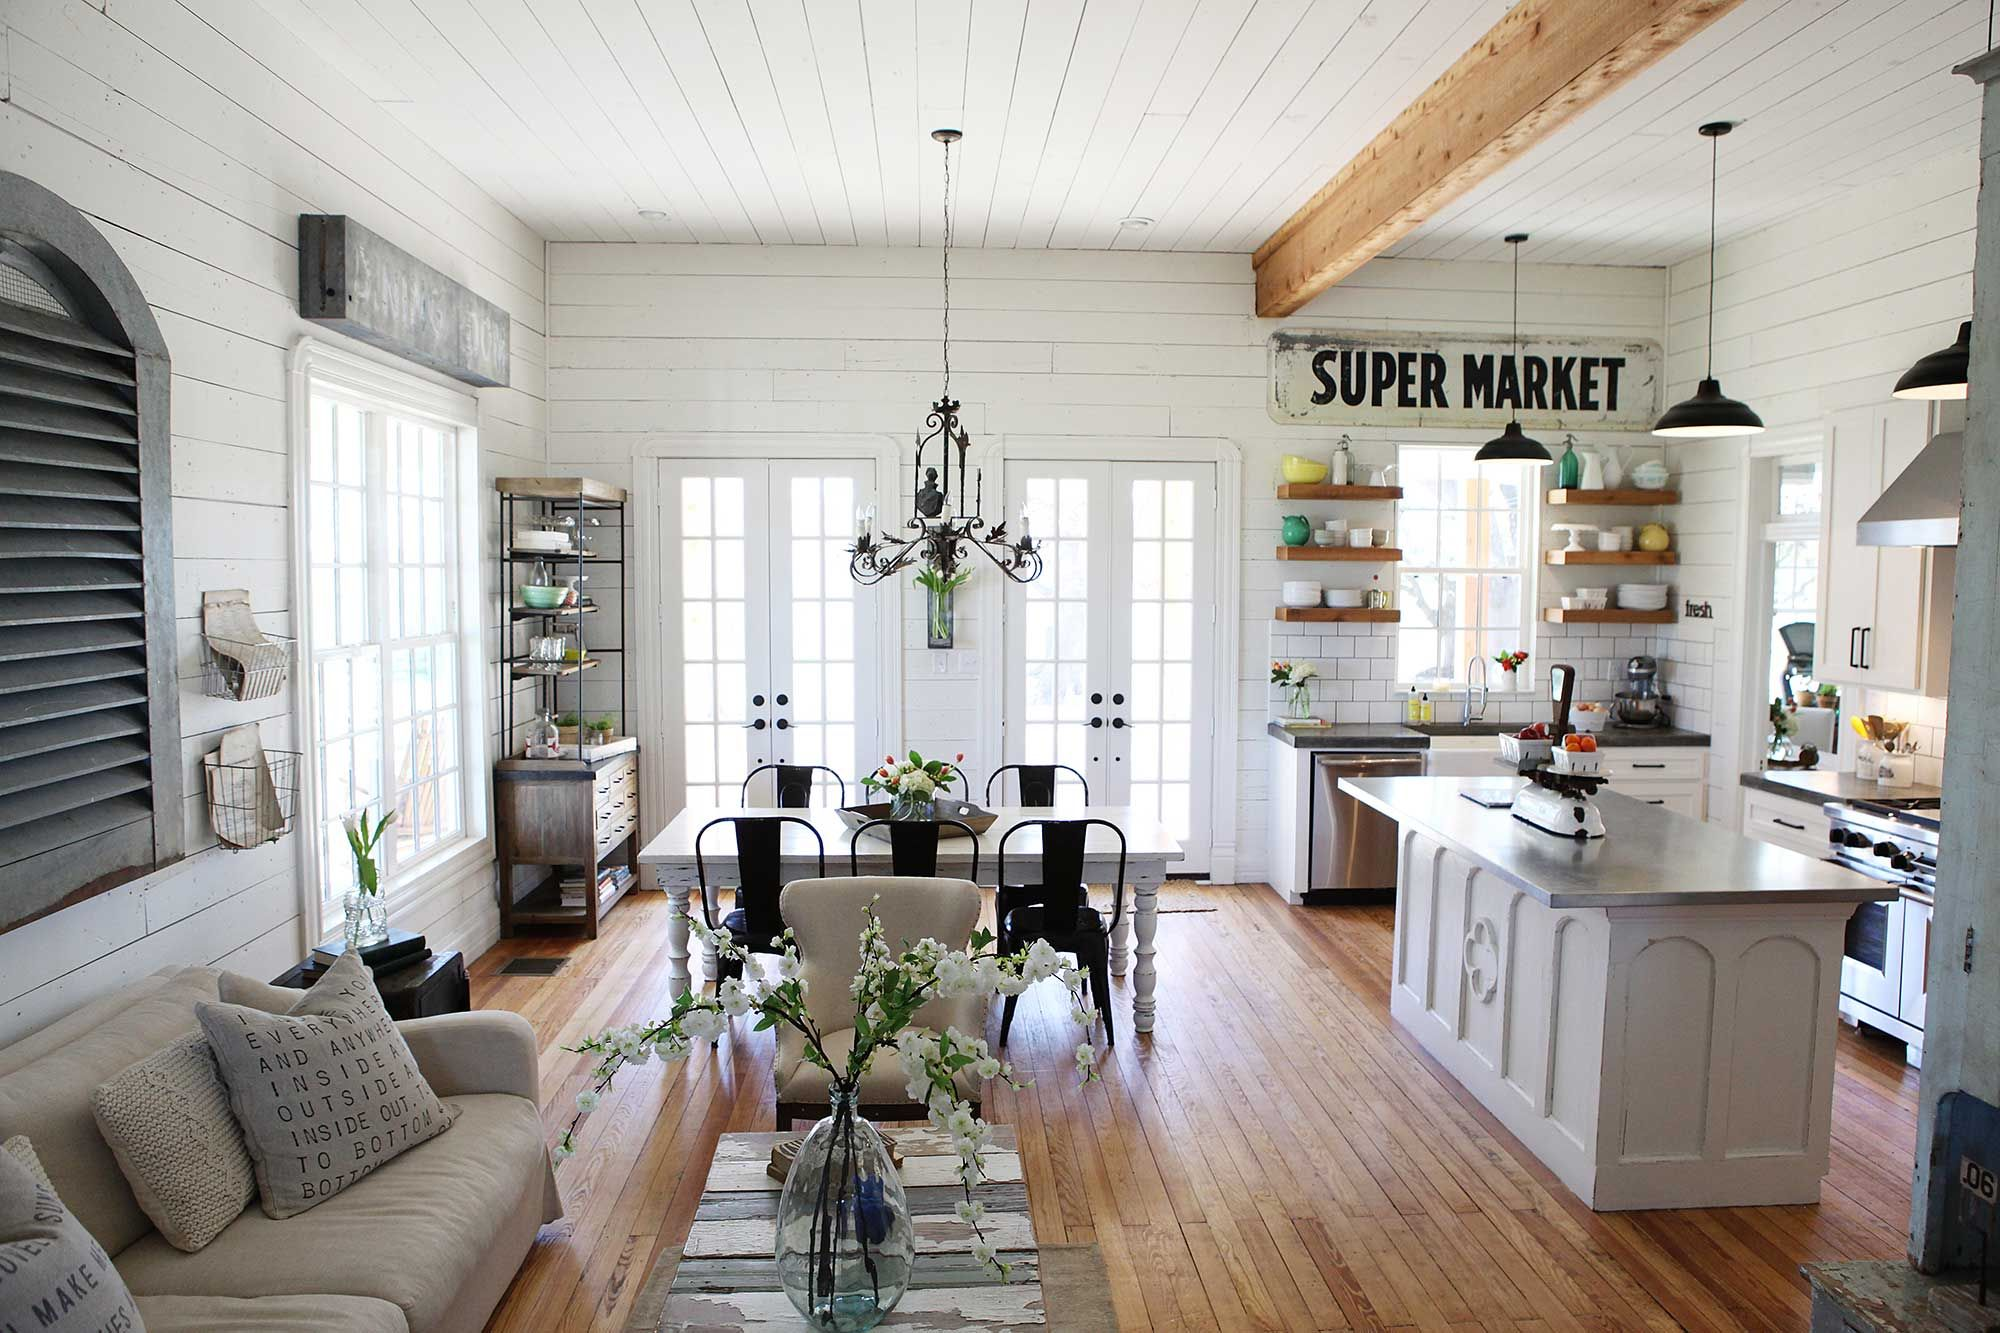 Fixer upper kitchen gallery - 17 Best Images About Fixer Upper Hgtv On Pinterest Magnolia Homes Joanna Gaines Blog And Islands